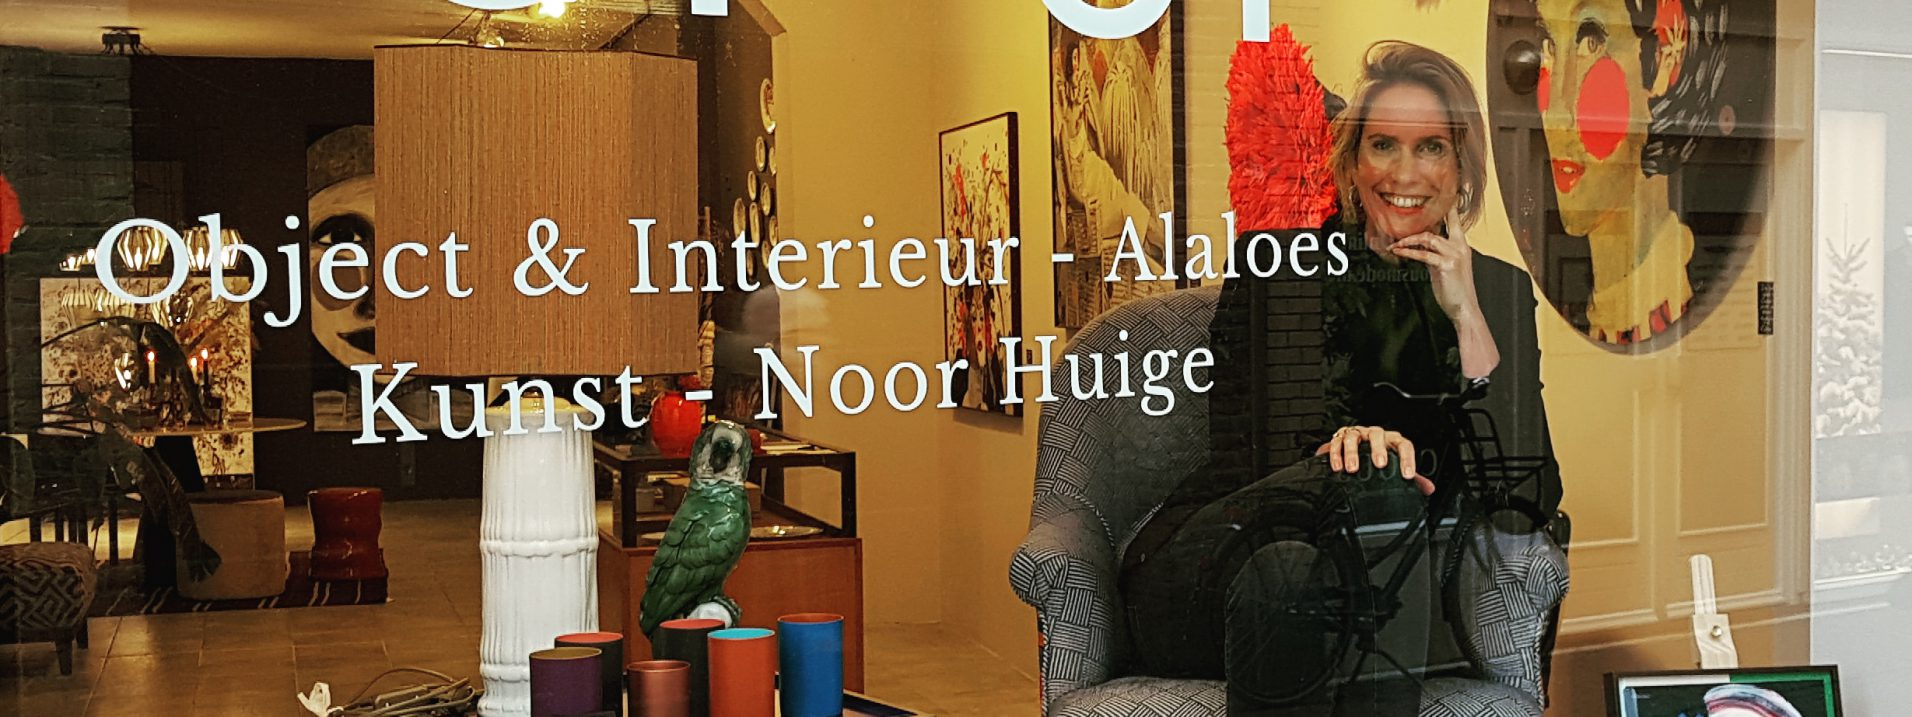 Noor Huige POP UP Store Den Bosch